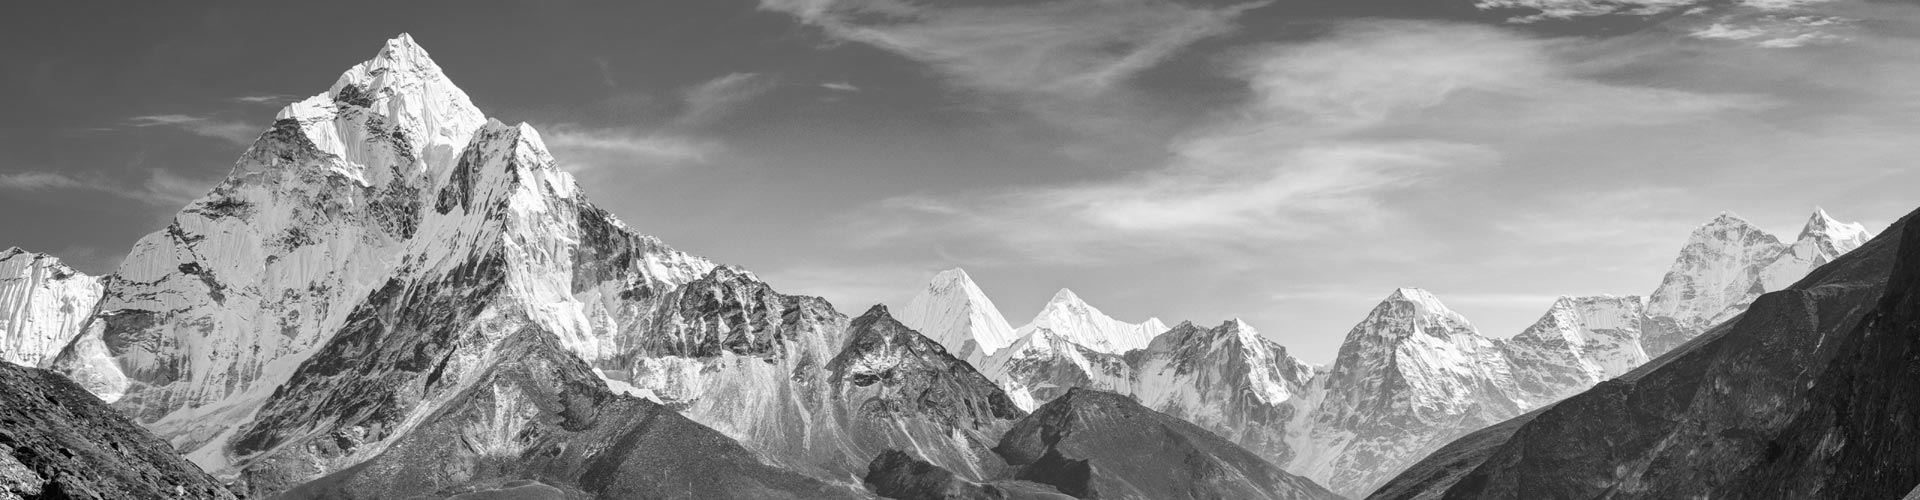 Nepal Travel Advice